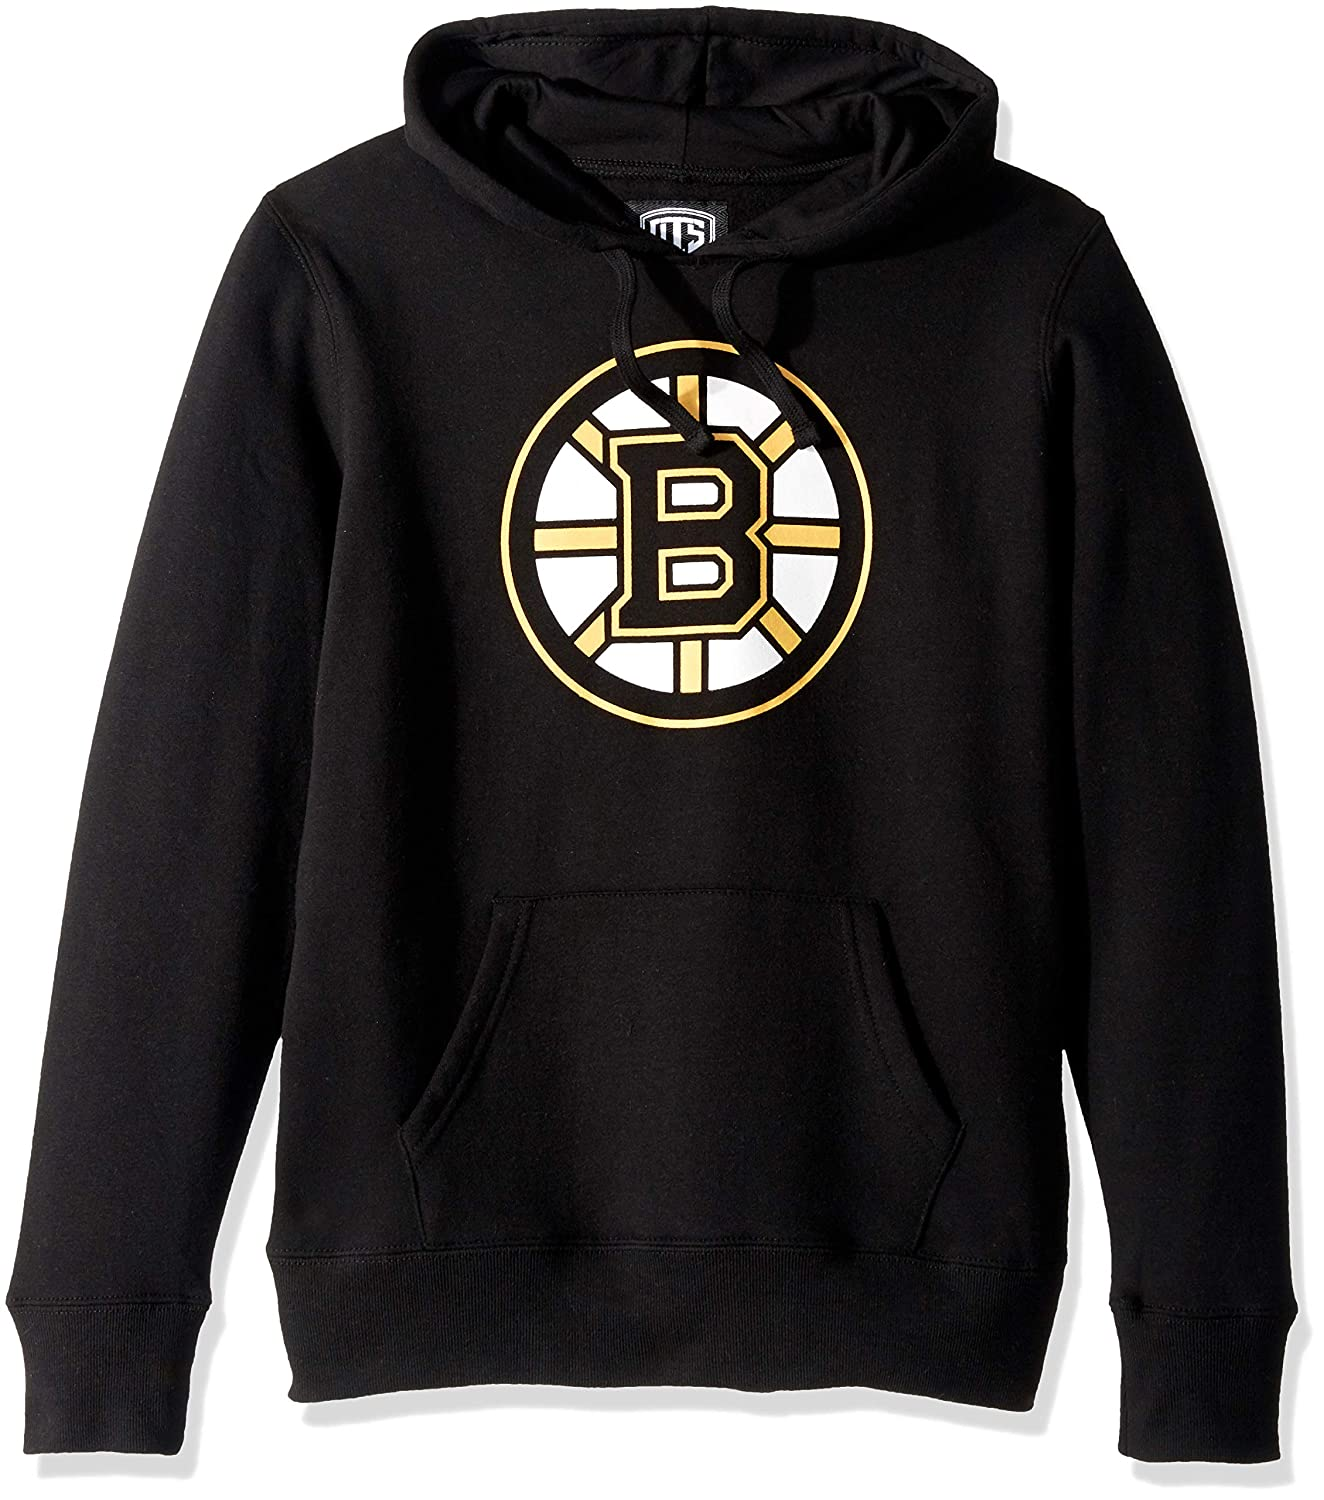 88088b988 Amazon.com   OTS NHL Adult Women s NHL Women s Fleece Hoodie   Sports    Outdoors